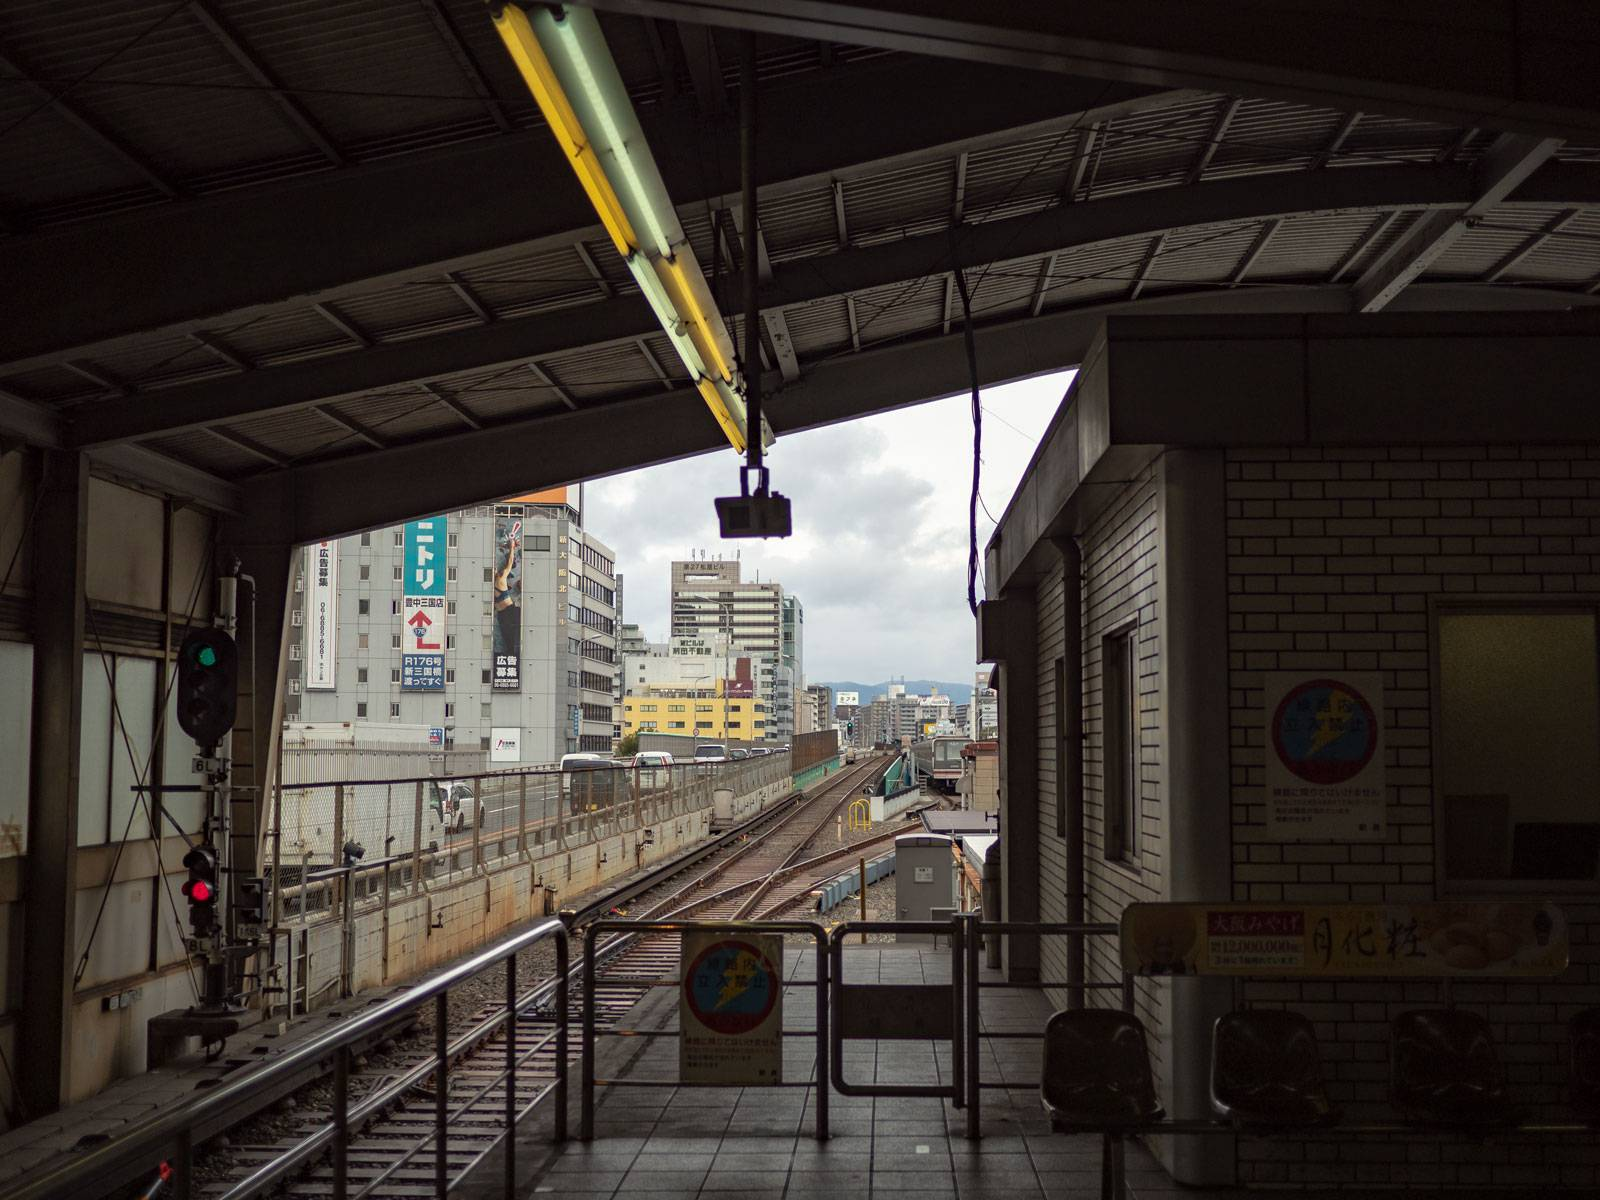 Arriving at Shin-Osaka station